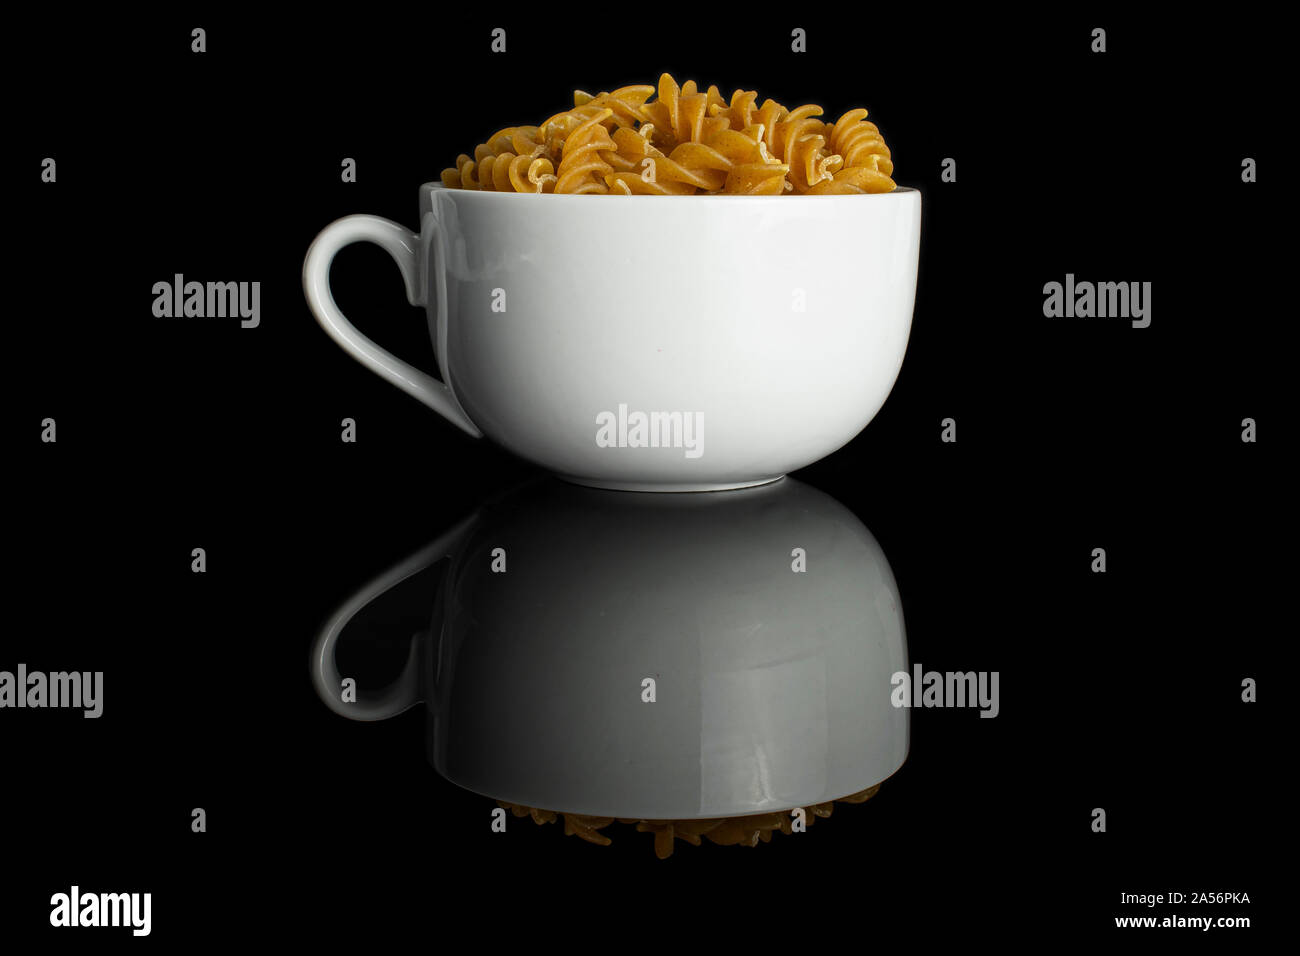 Lot of whole dry brown wholegrain fusilli in white ceramic cup isolated on black glass Stock Photo